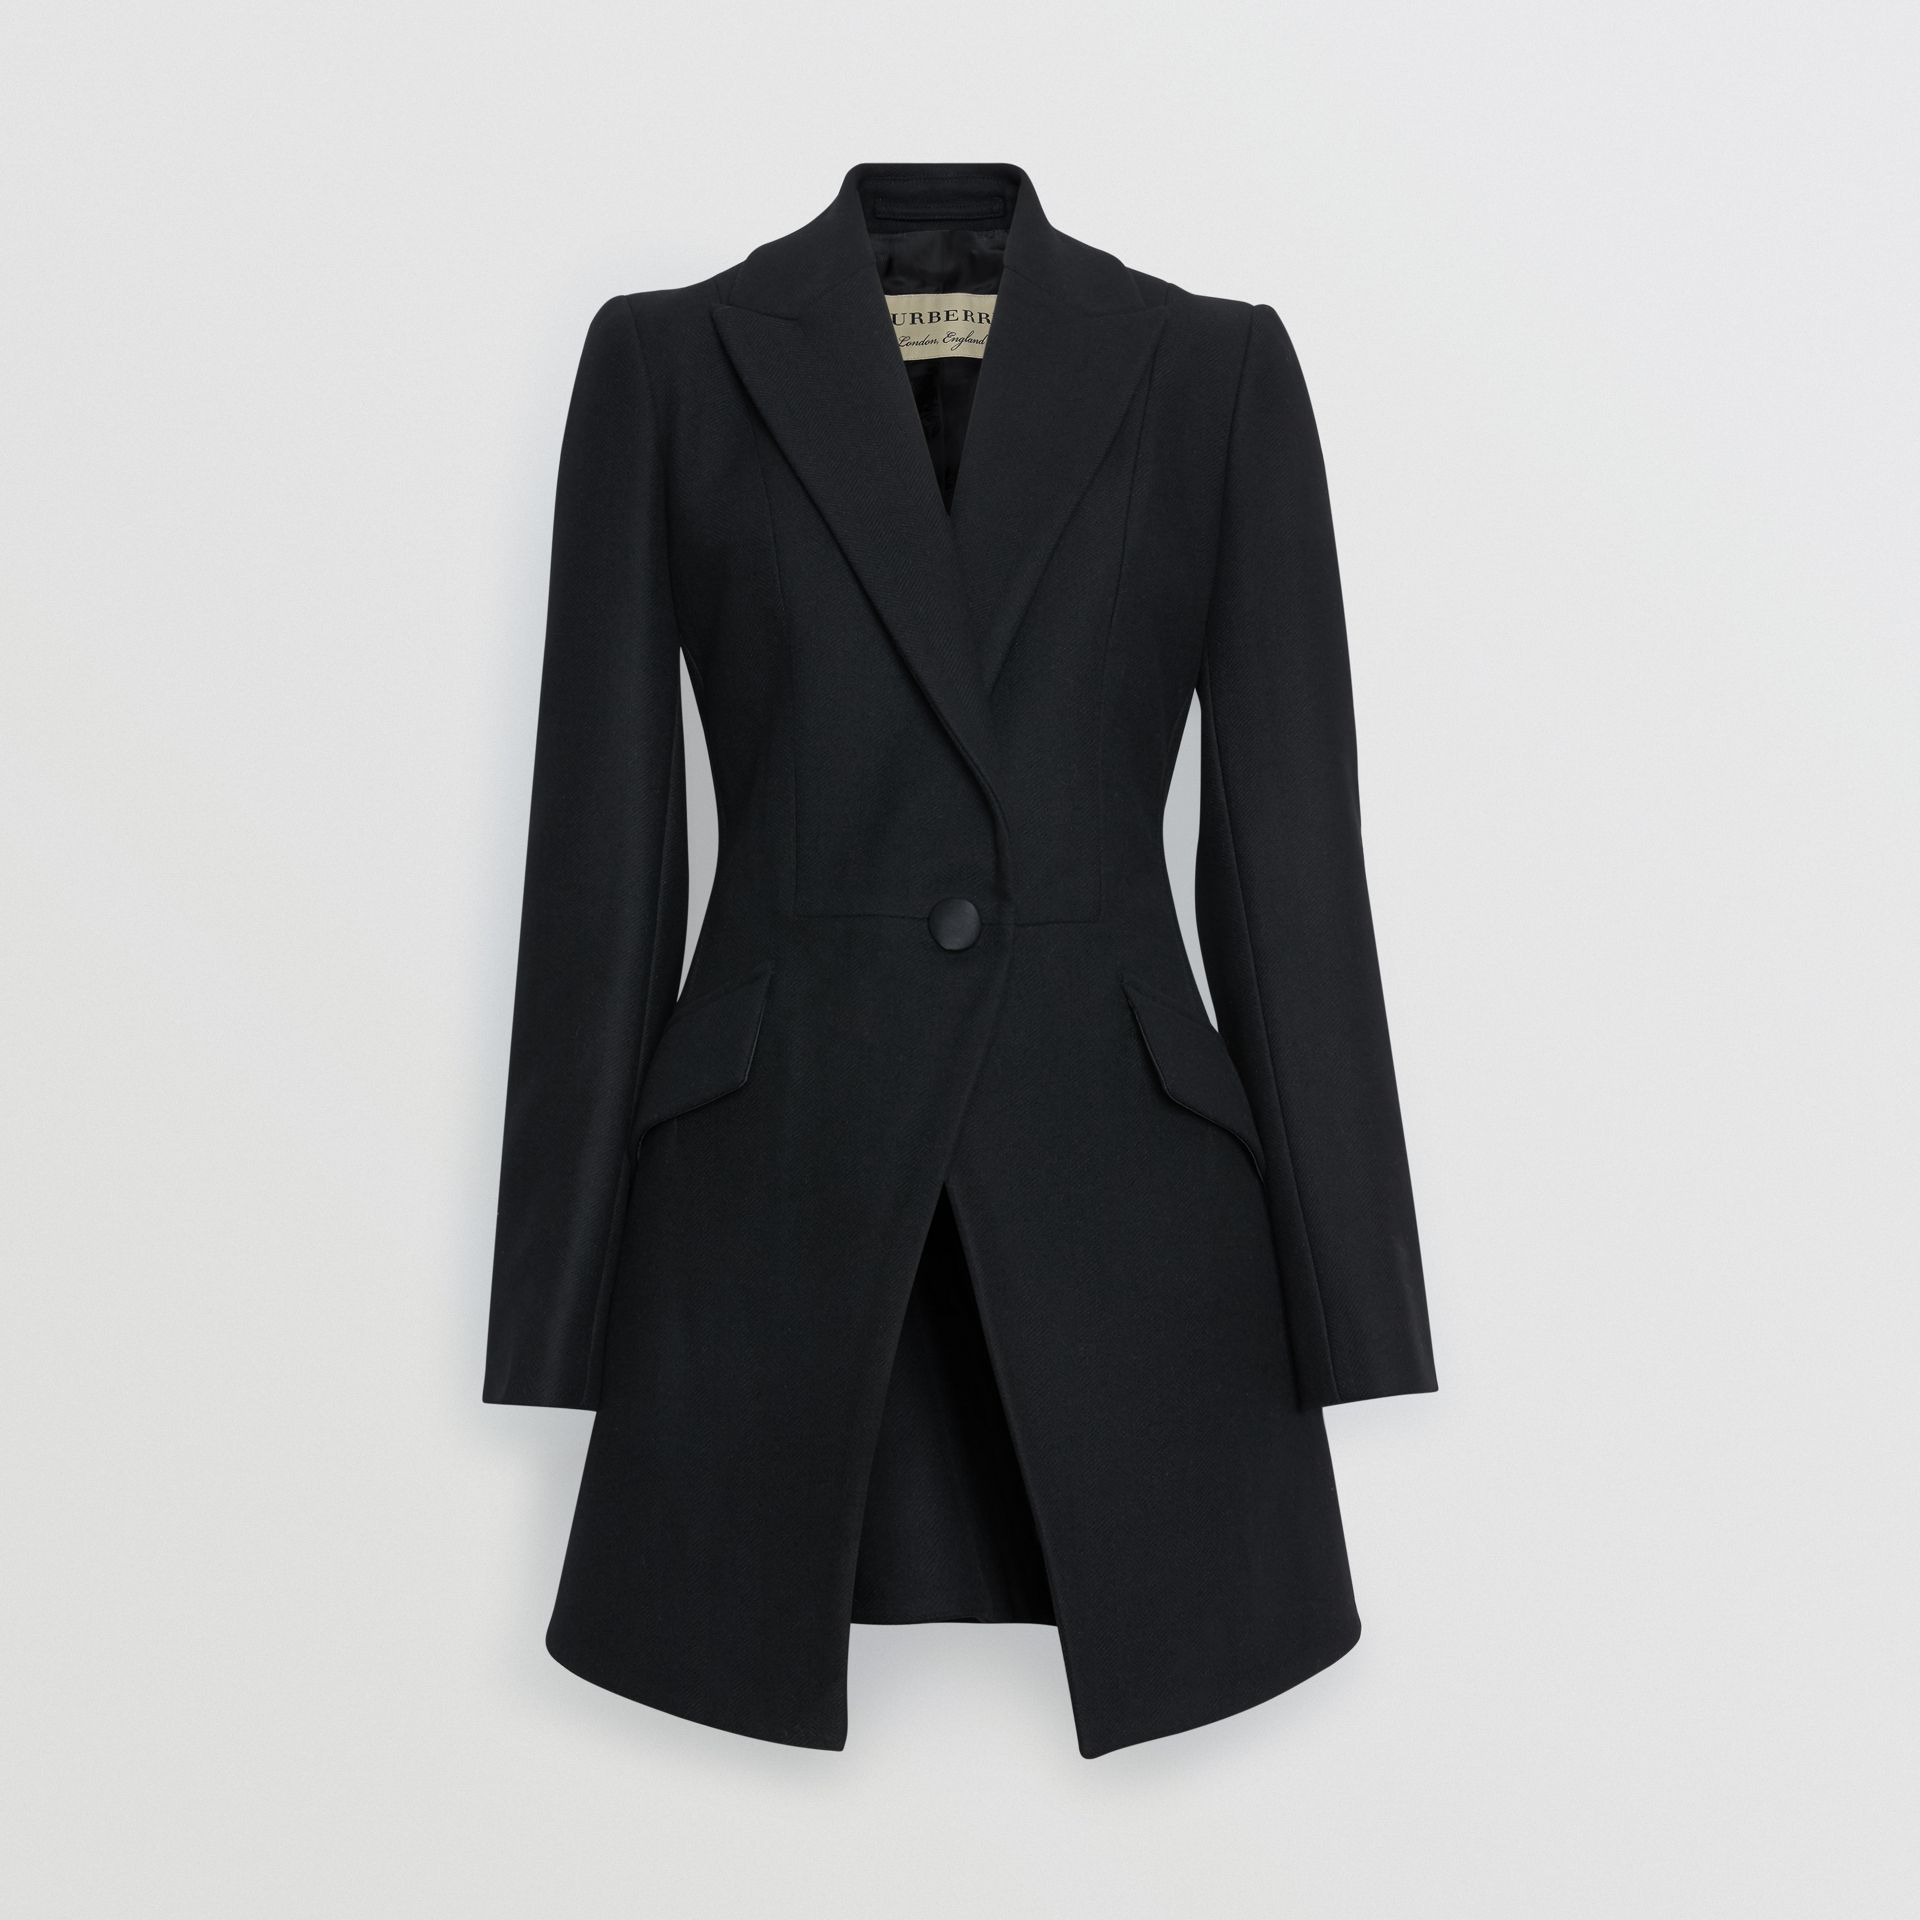 Herringbone Wool Cashmere Blend Tailored Jacket in Black - Women | Burberry - gallery image 3